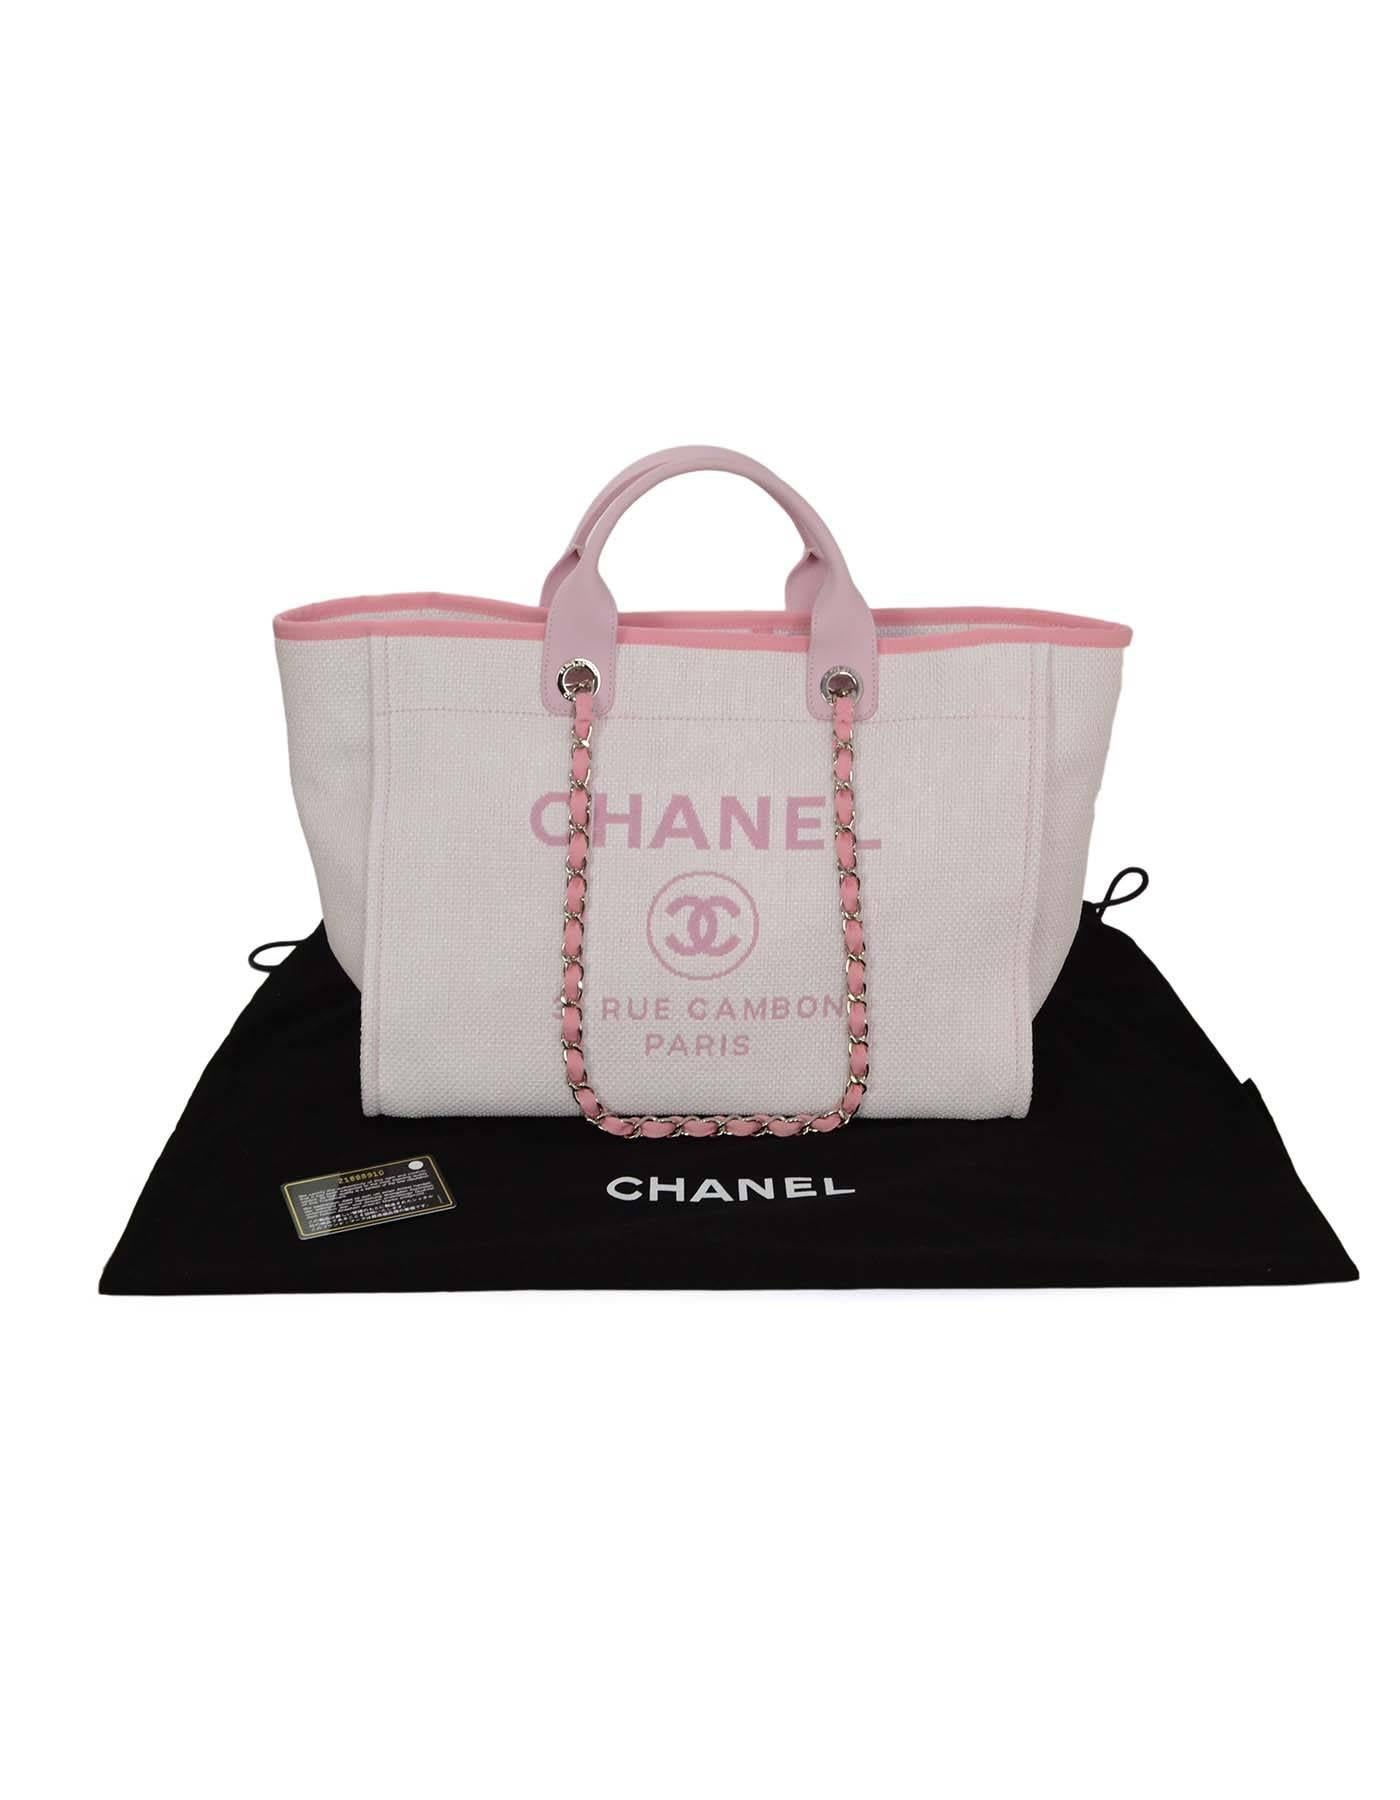 cf4f56d302c5b Chanel Pink Canvas Deauville Tote Bag SHW at 1stdibs